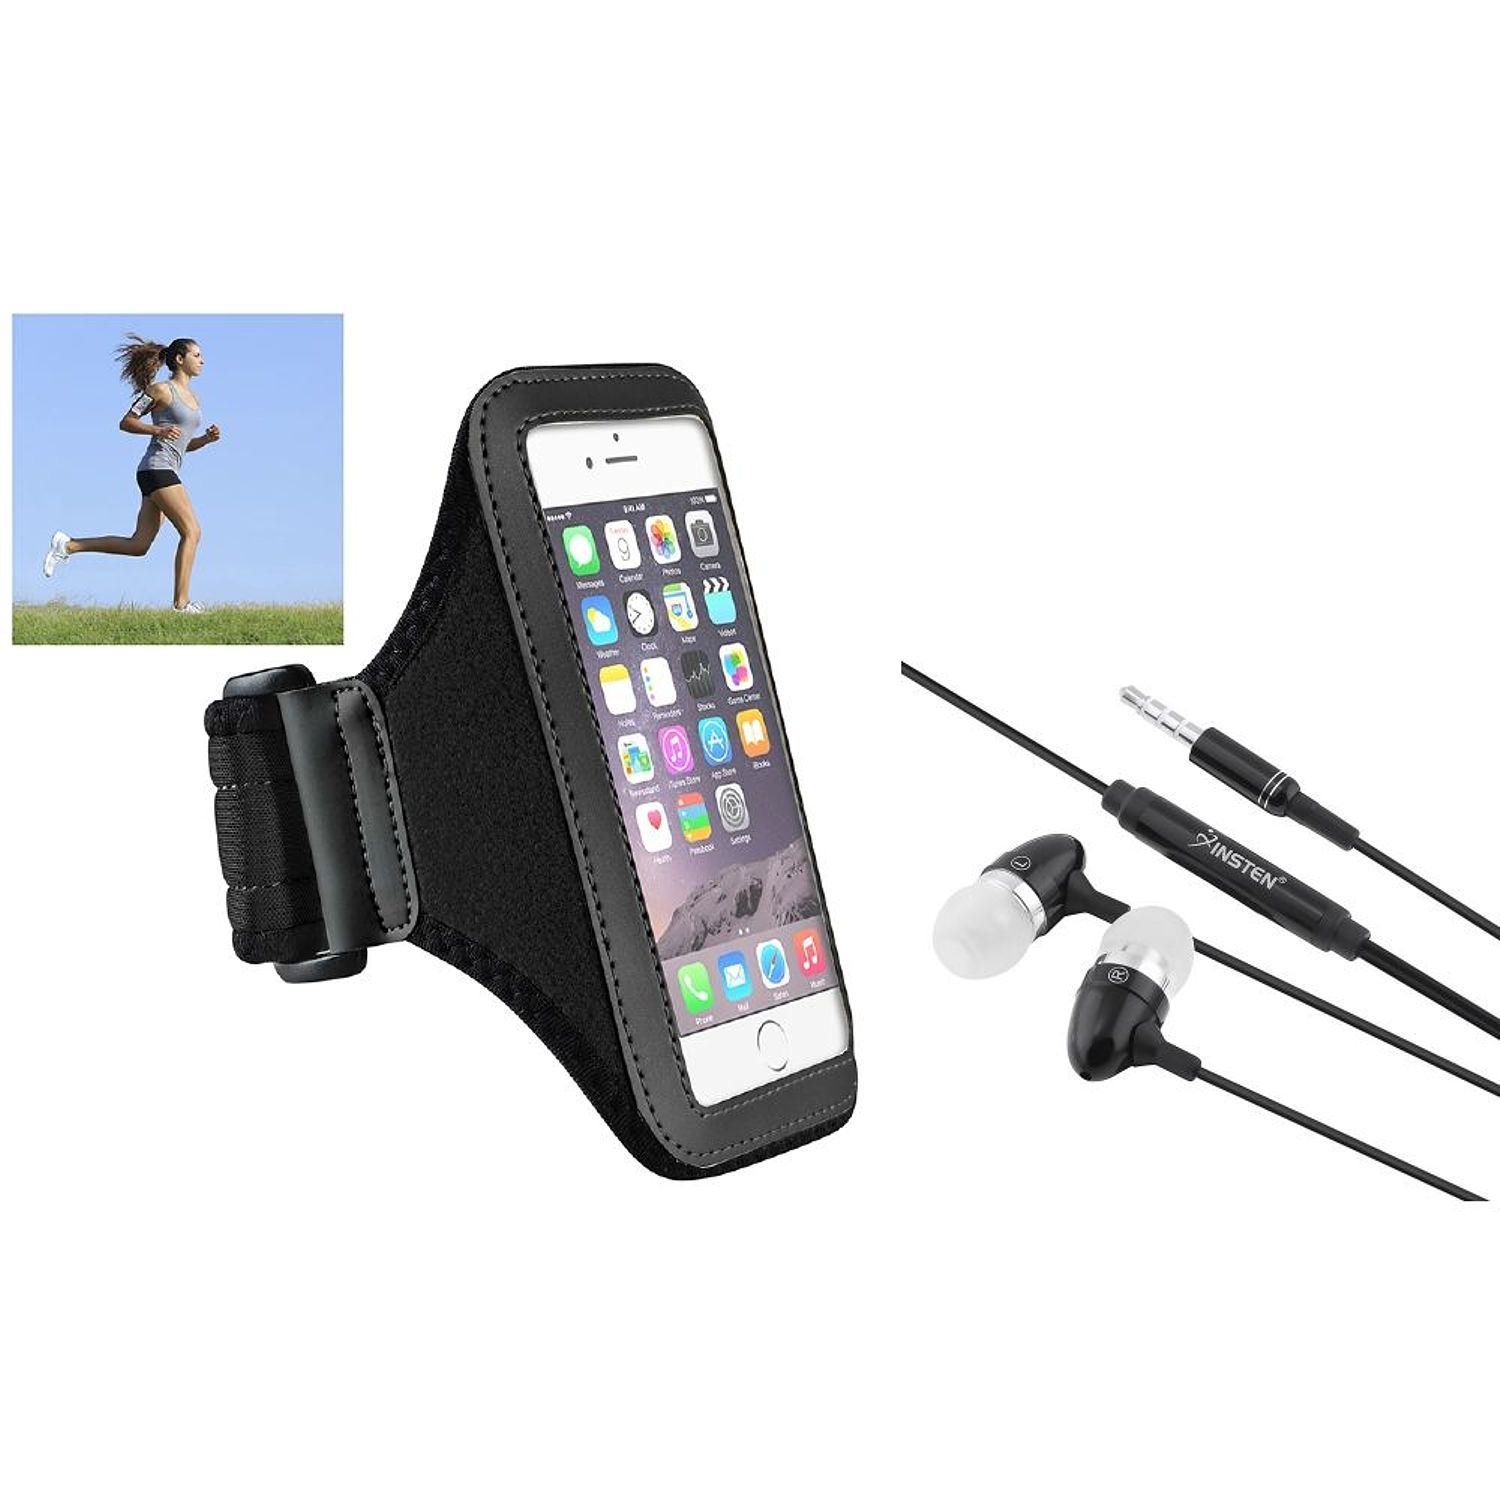 Armband Cell Phone Holder by Insten Black Sports Armband Case Phone Holder + 3.5mm Handsfree Headphone For iPhone 6 6S Workout